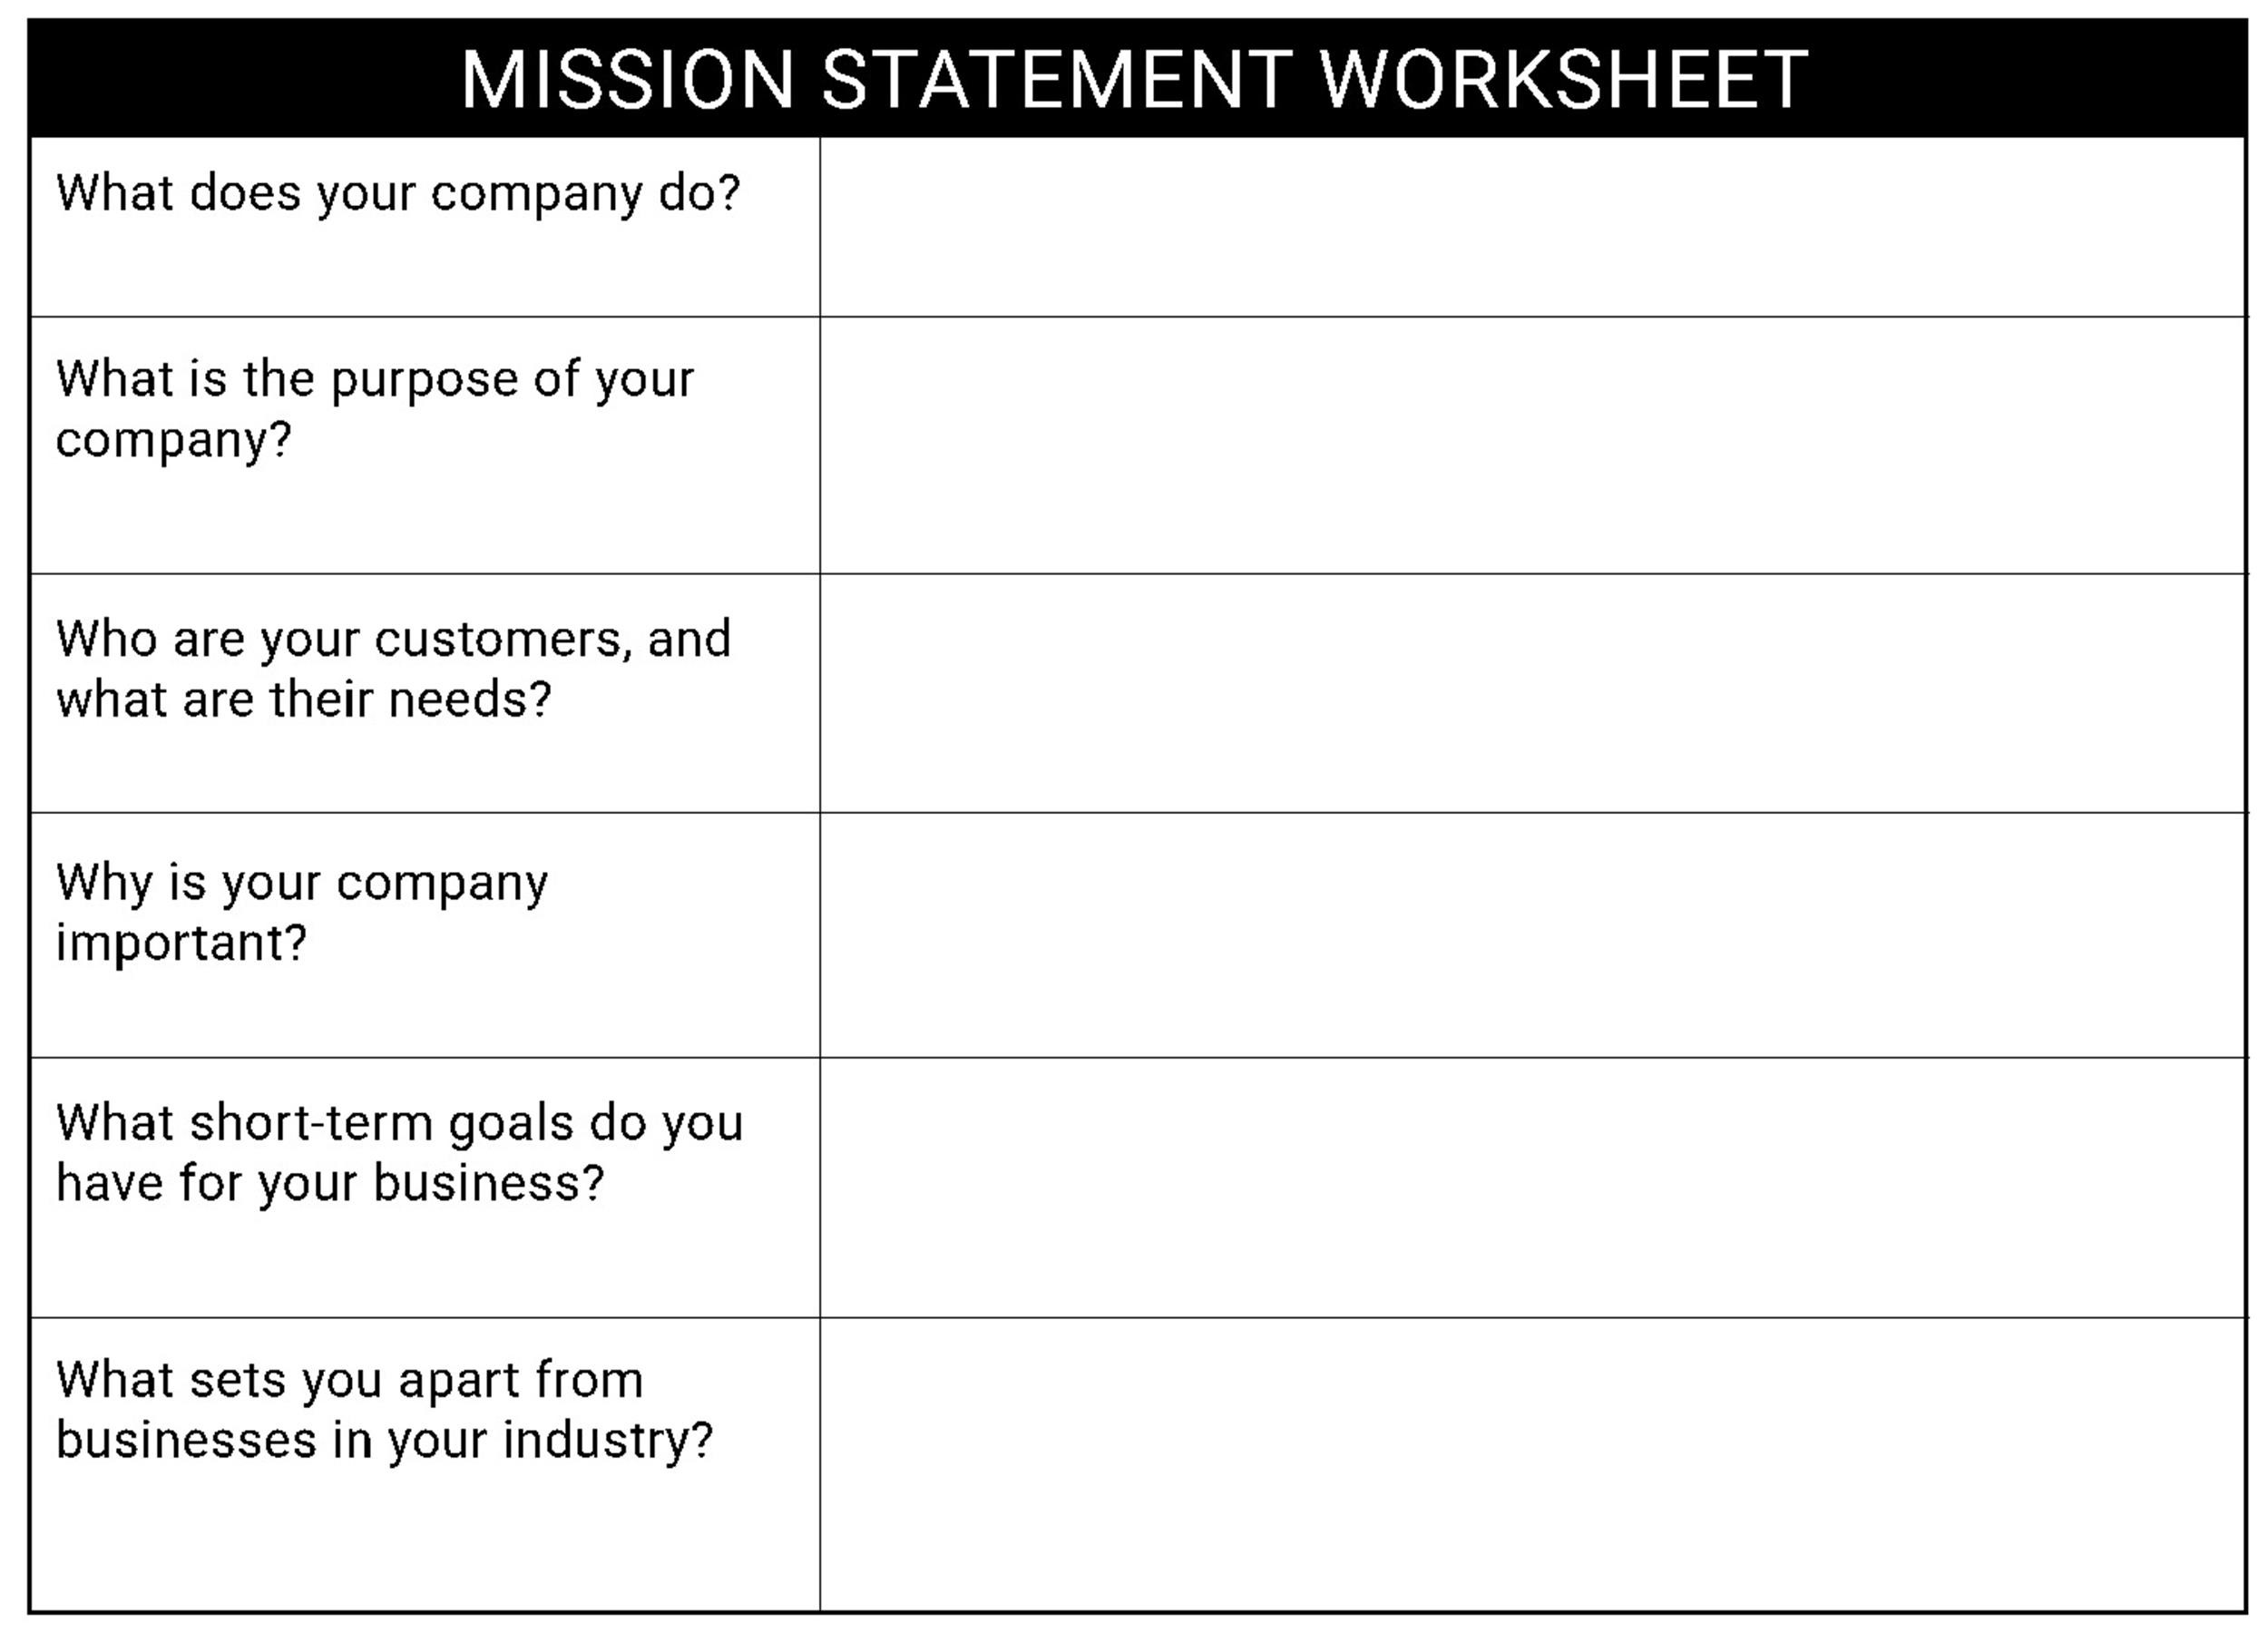 37 Inspiring Mission Statement Templates Business Or